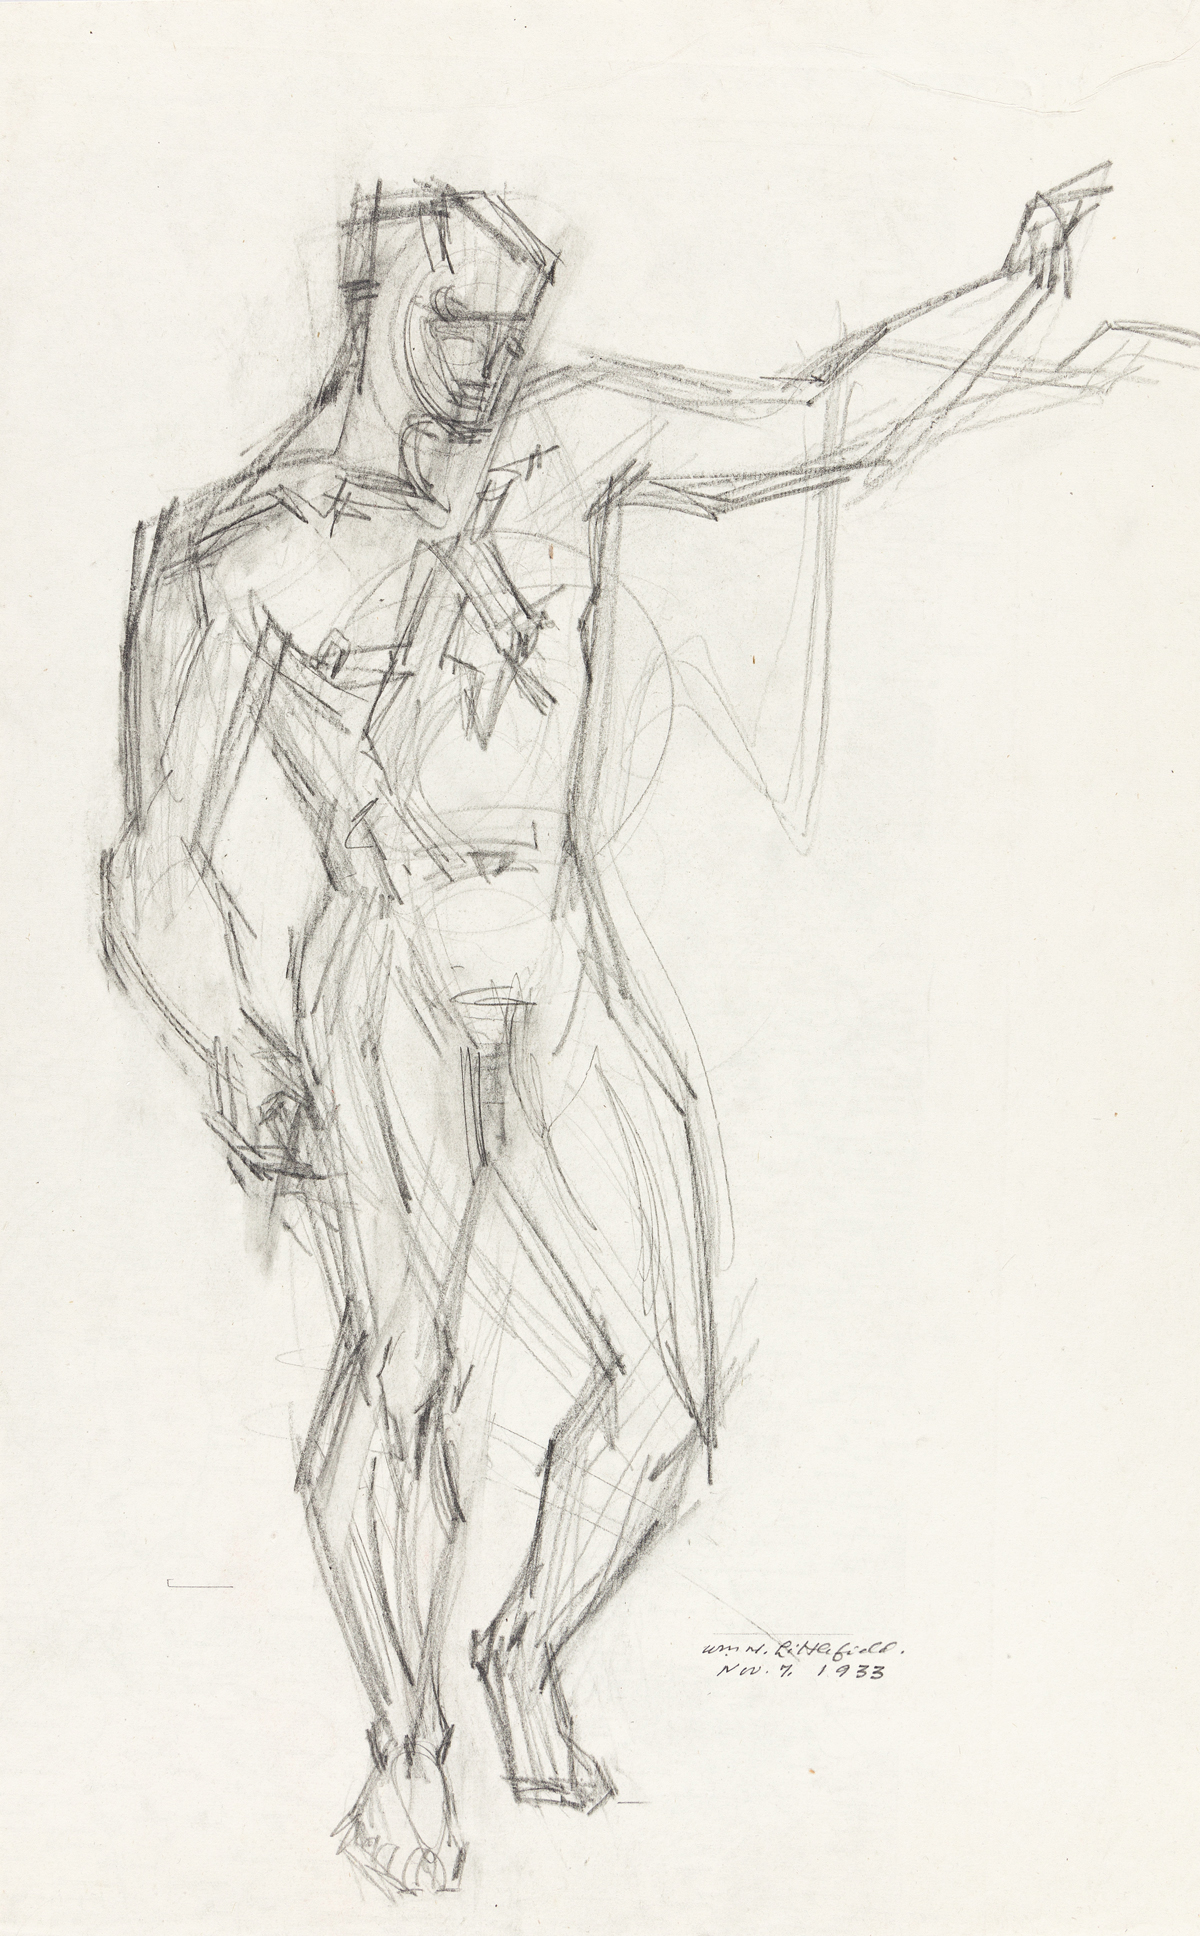 WILLIAM LITTLEFIELD (1902 - 1969) Two drawings.